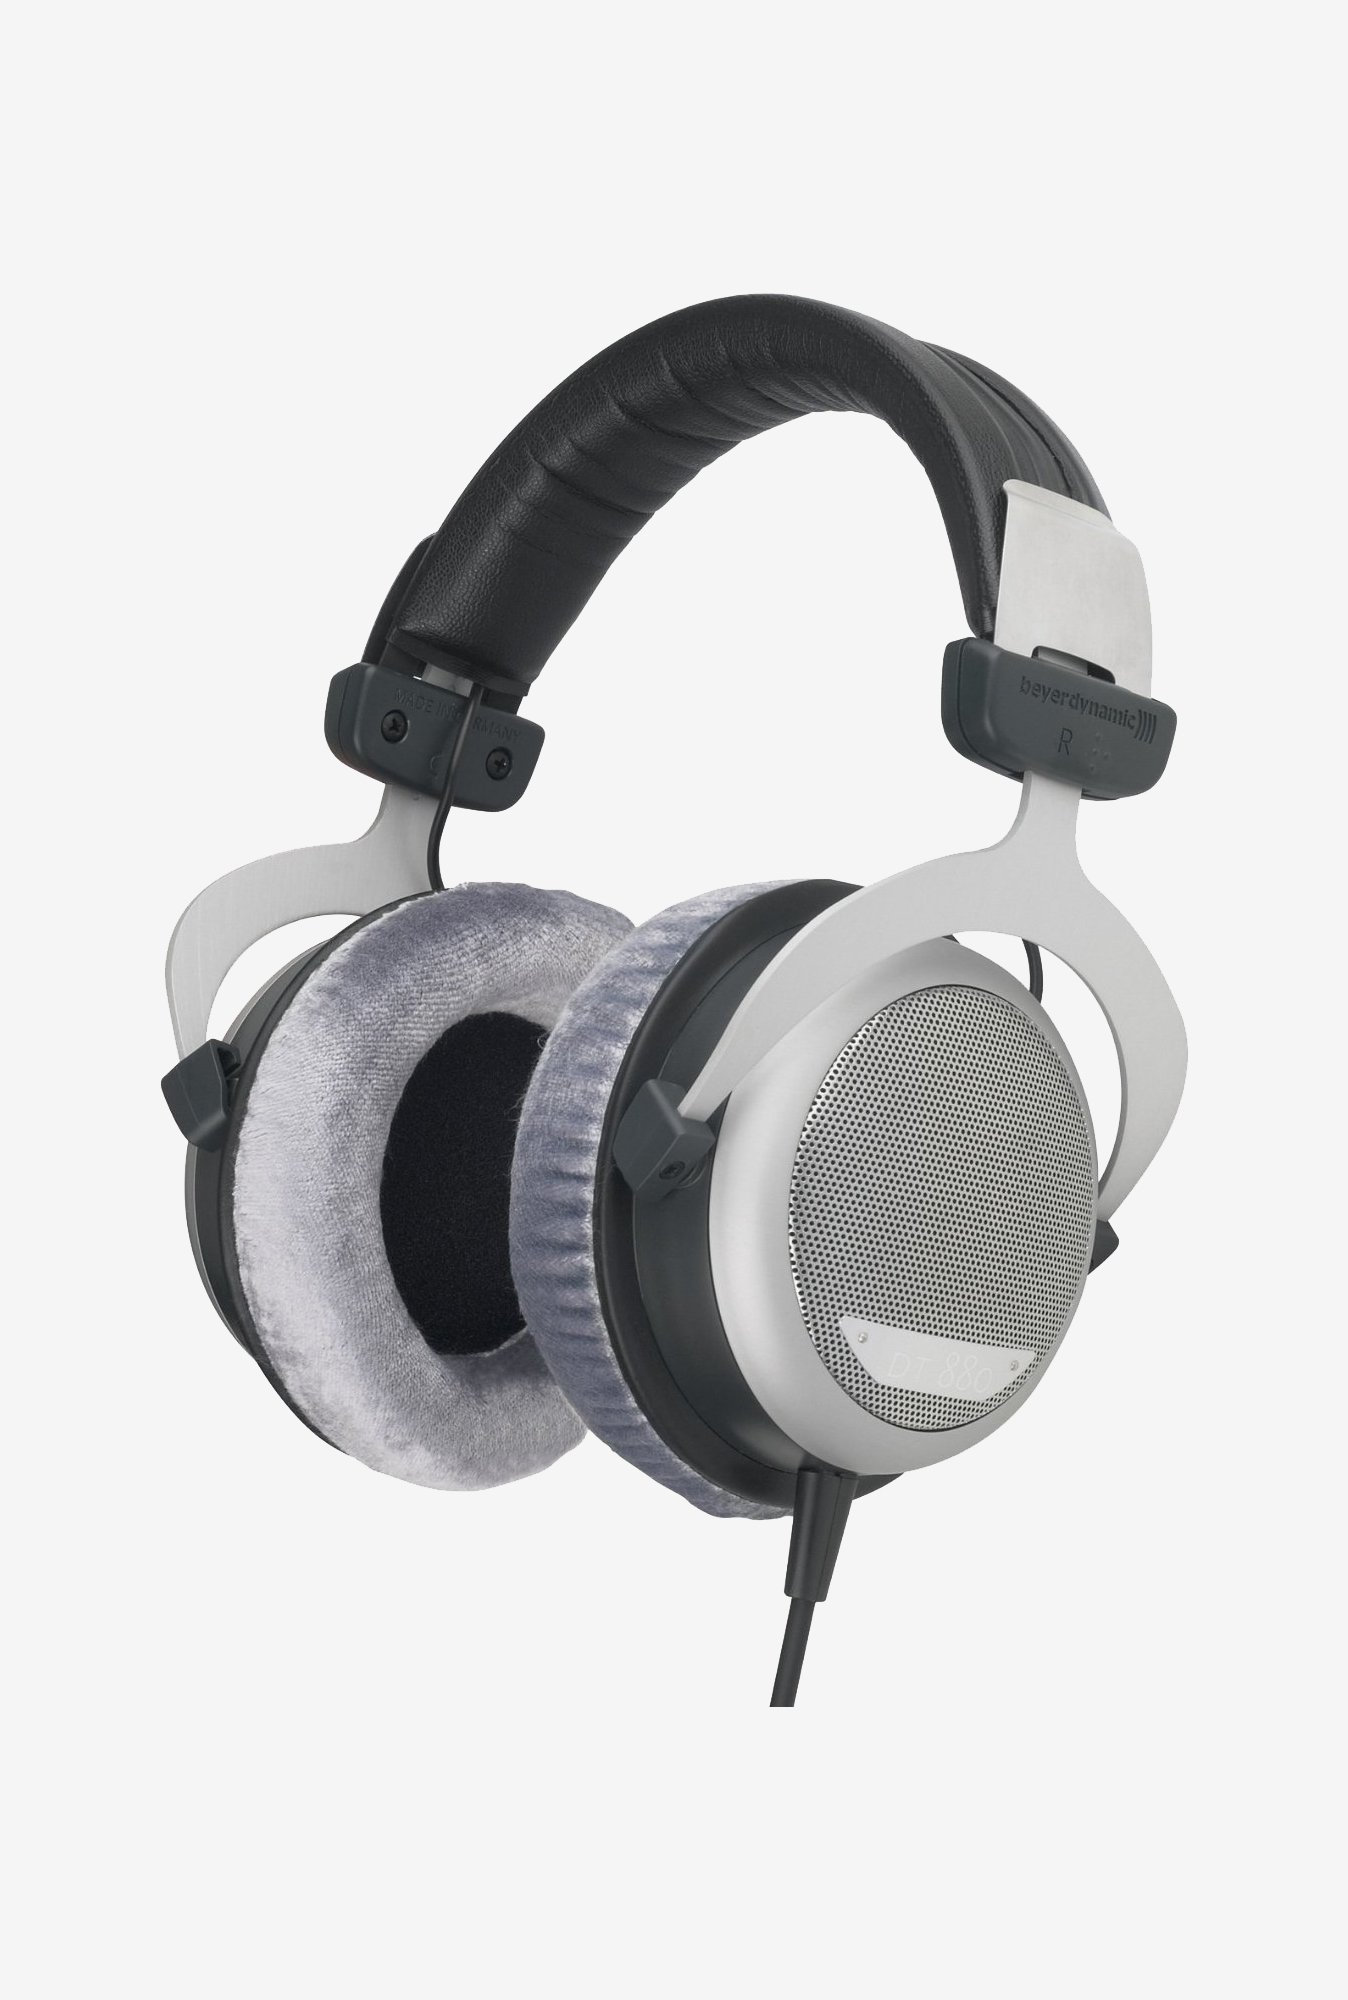 Beyerdynamic DT 880 Edition Headphones Black and Silver